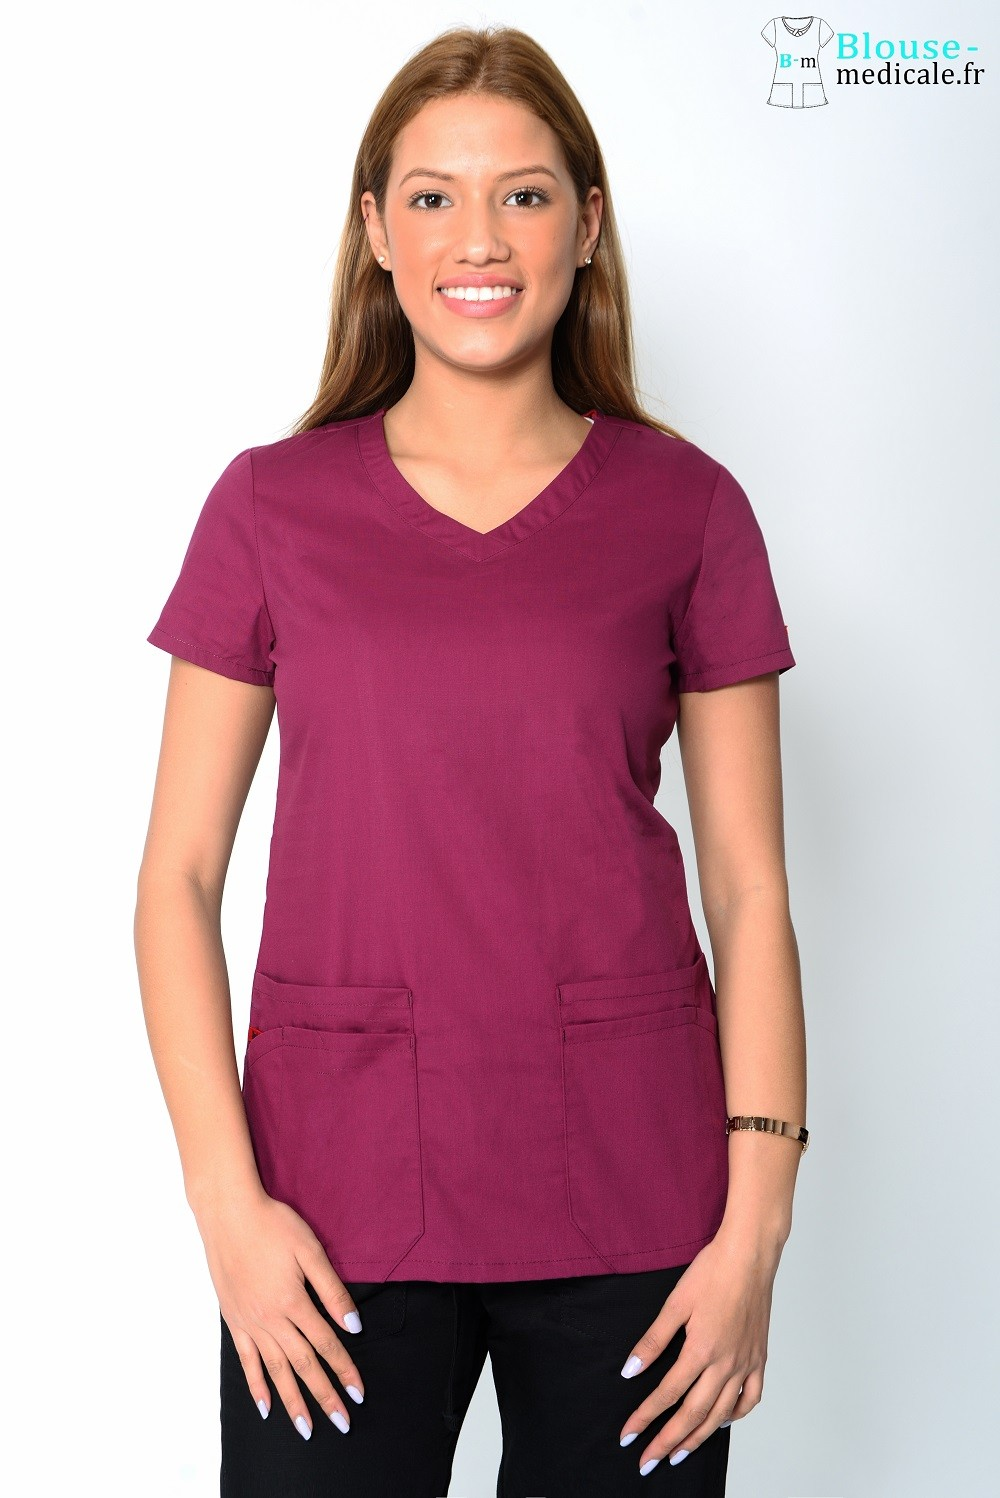 8d6b0443be607 blouse medicale dickies pas cher tunique medicale dickies pas cher ...